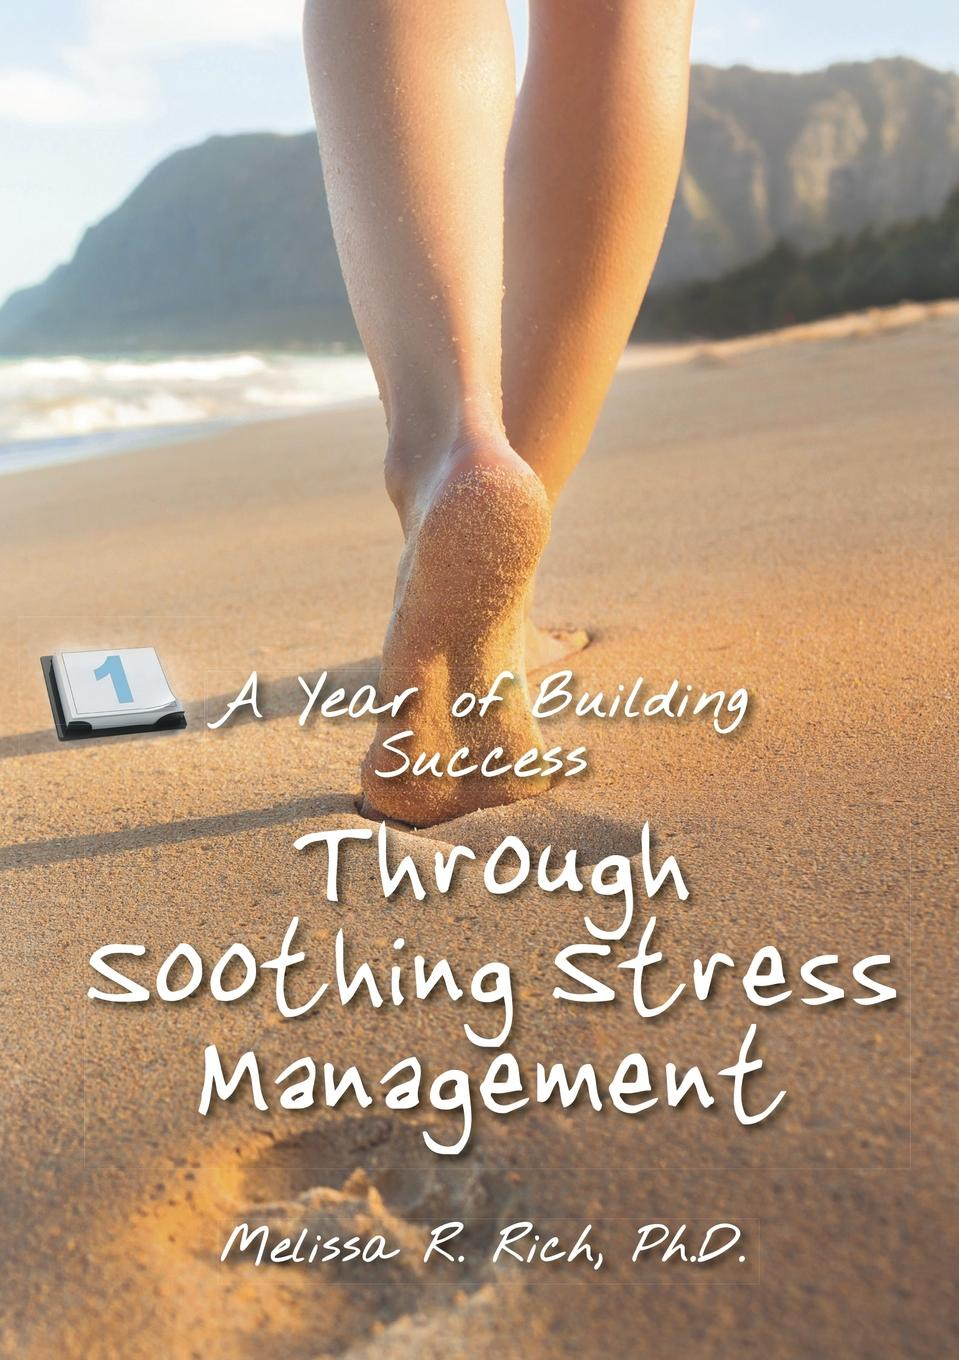 Ph.D. Melissa R. Rich A Year of Building Success Through Soothing Stress Management недорго, оригинальная цена